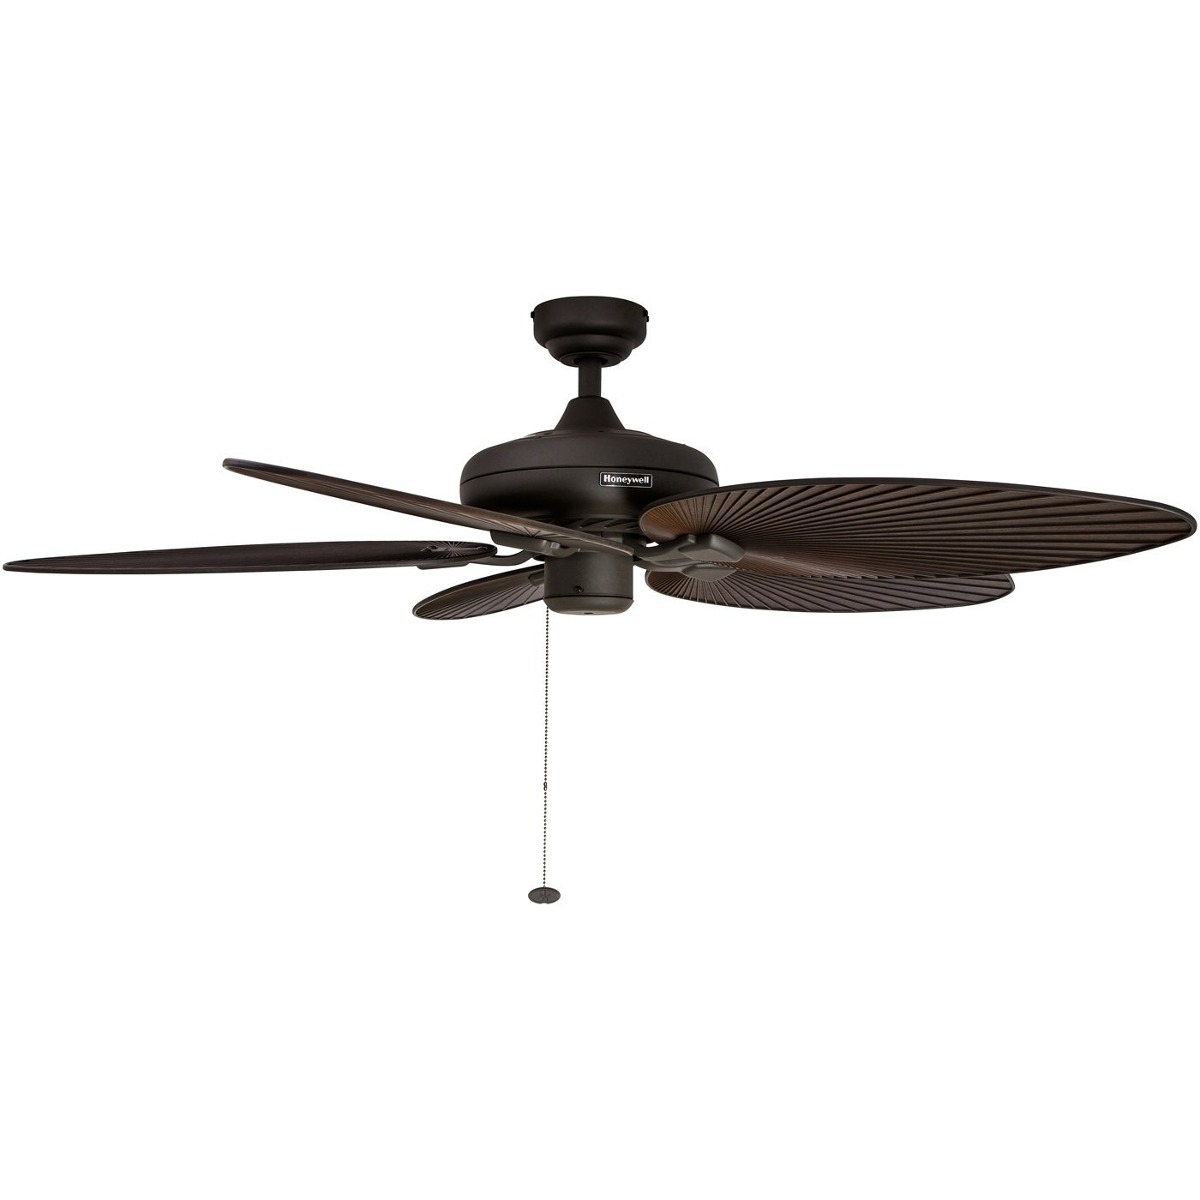 Honeywell palm island 52 inch tropical ceiling fan five pal tropical ceiling fan five pal cargando zoom aloadofball Images